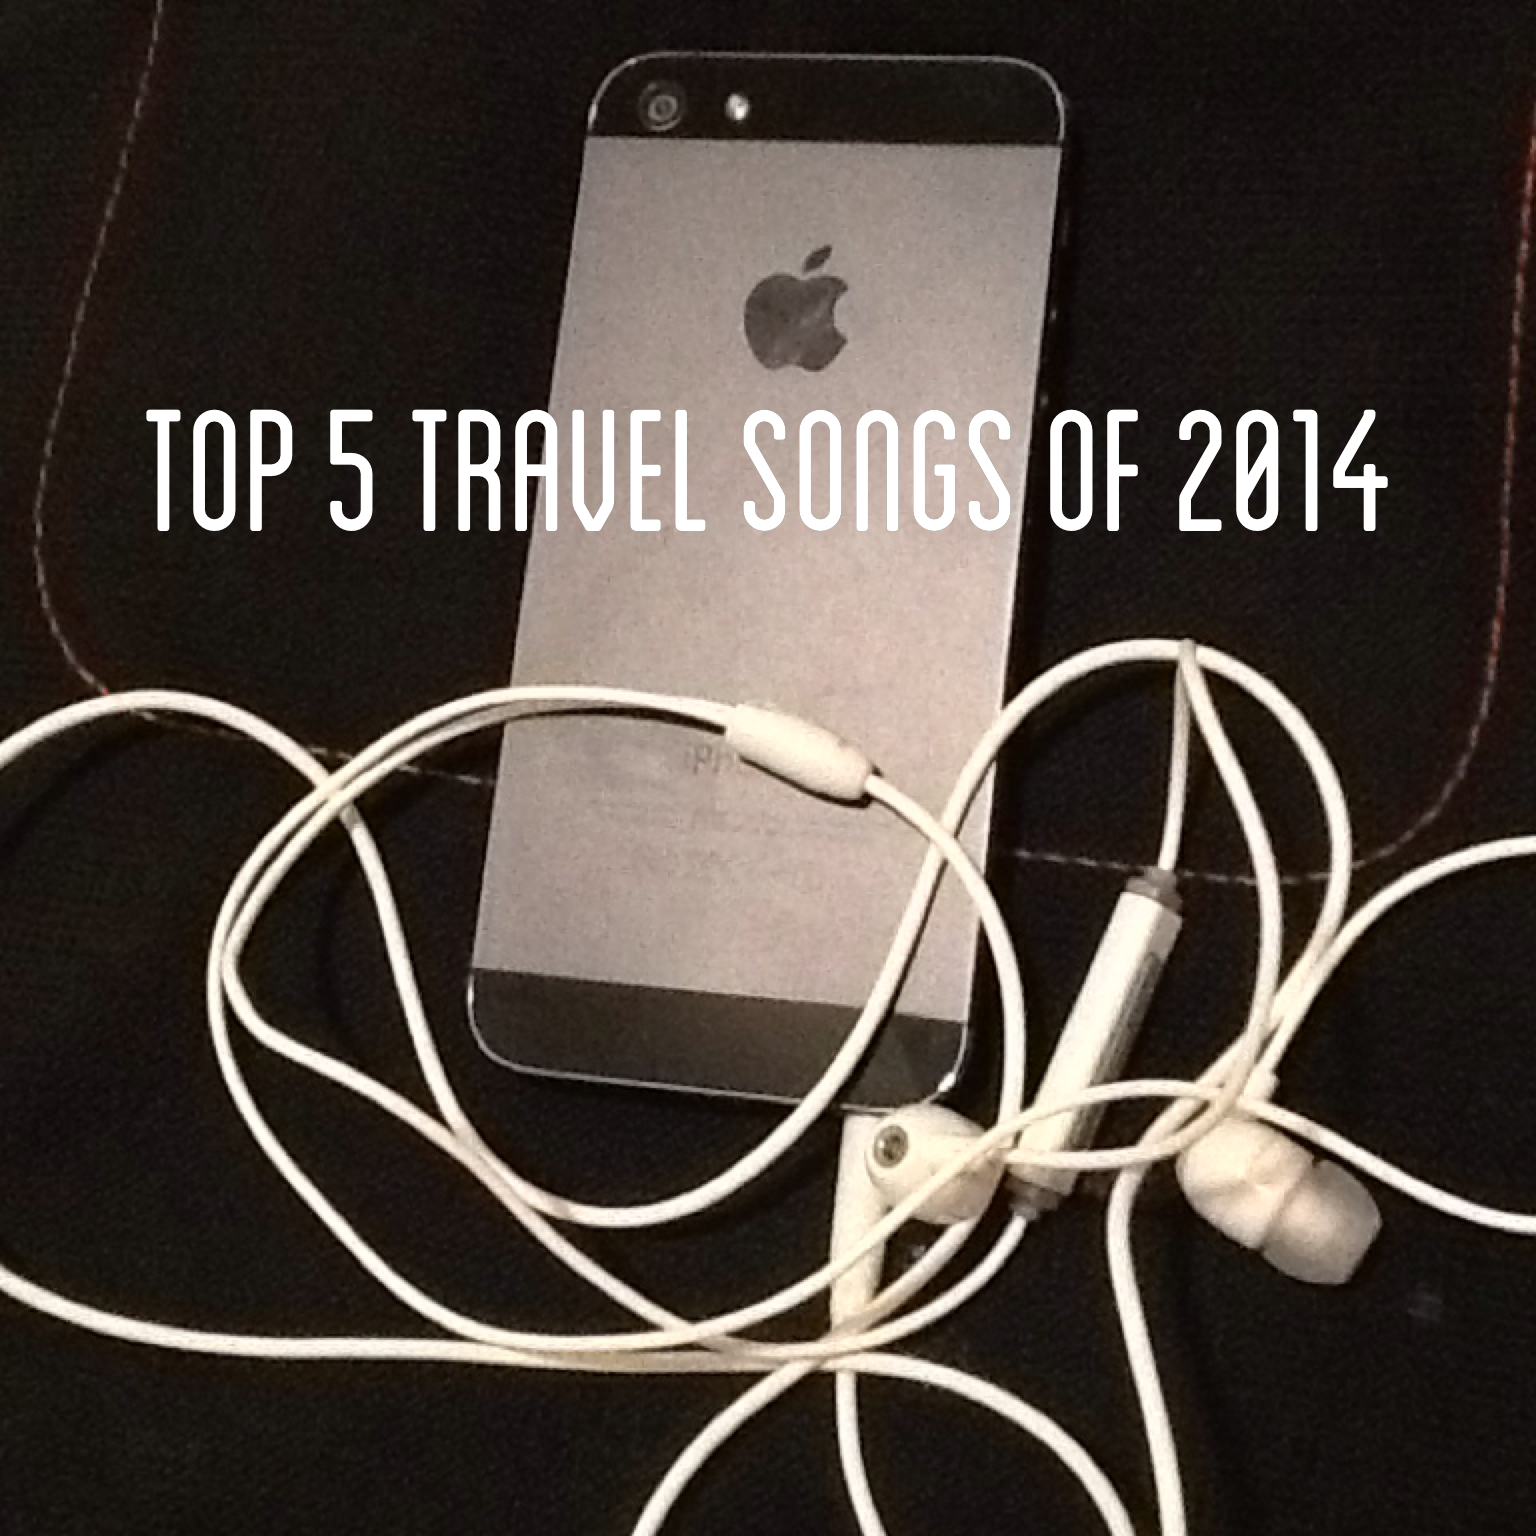 Travel songs